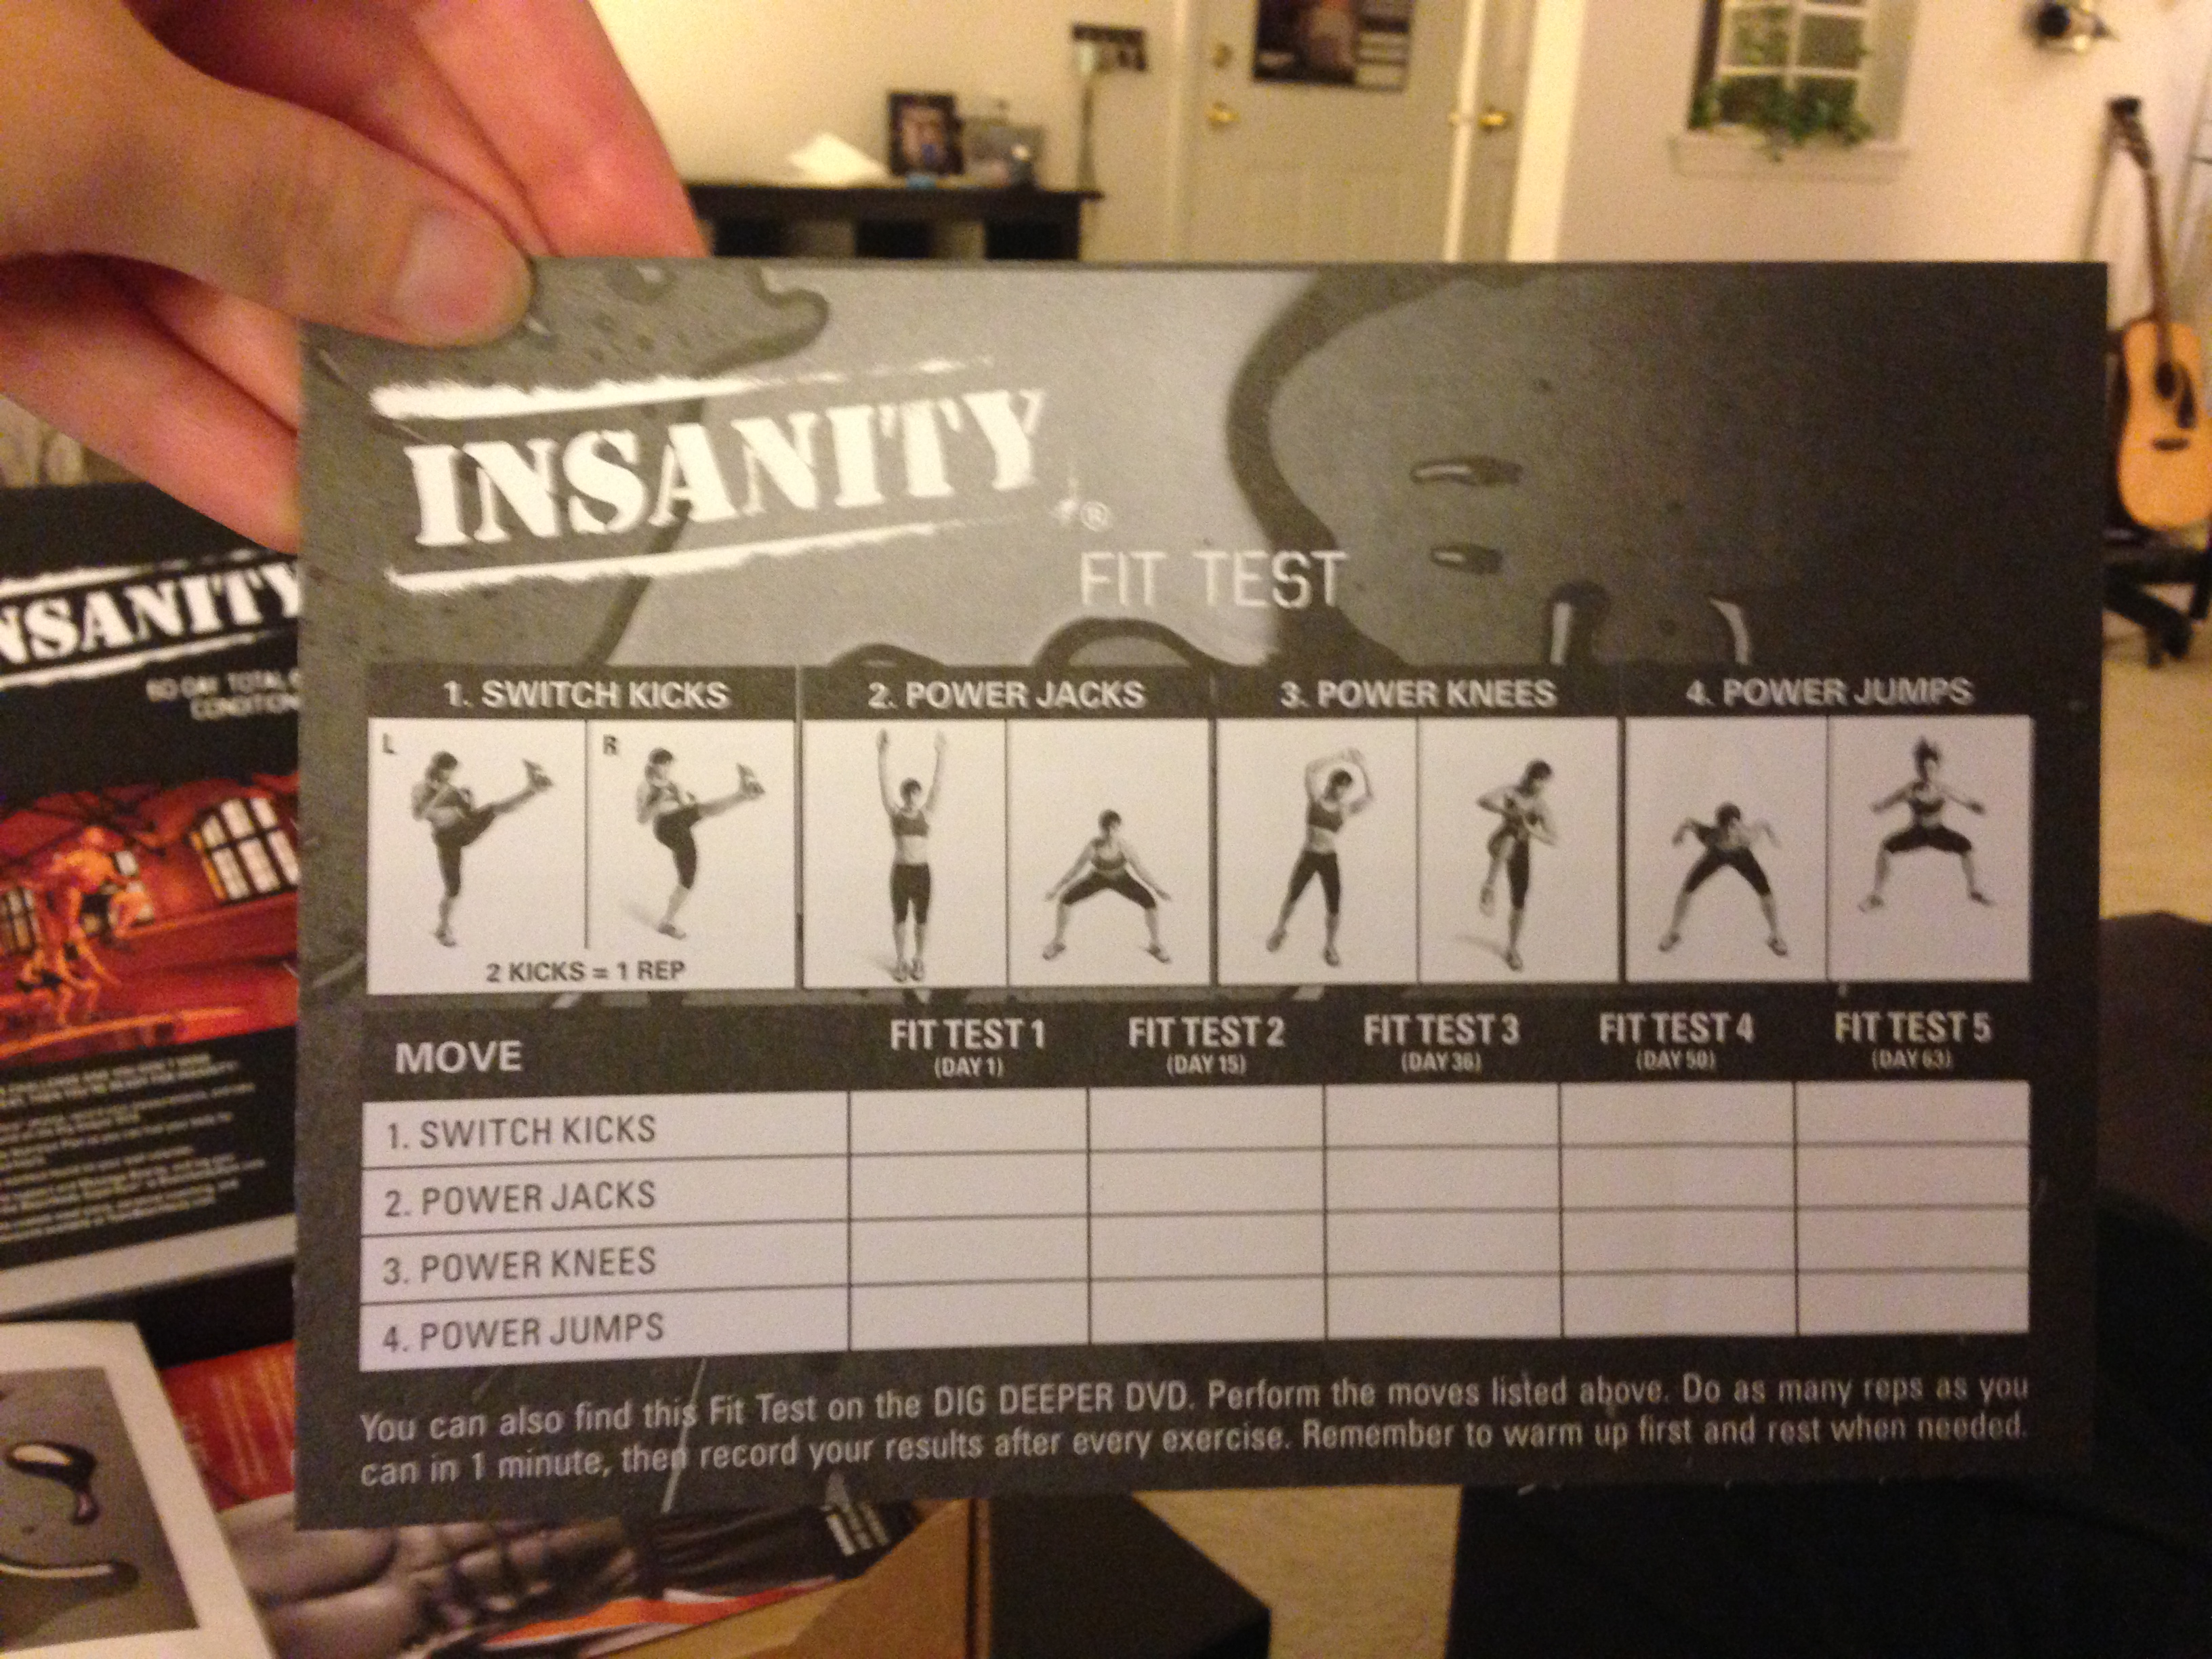 Weekend Relaxation And Insanity In The Morning